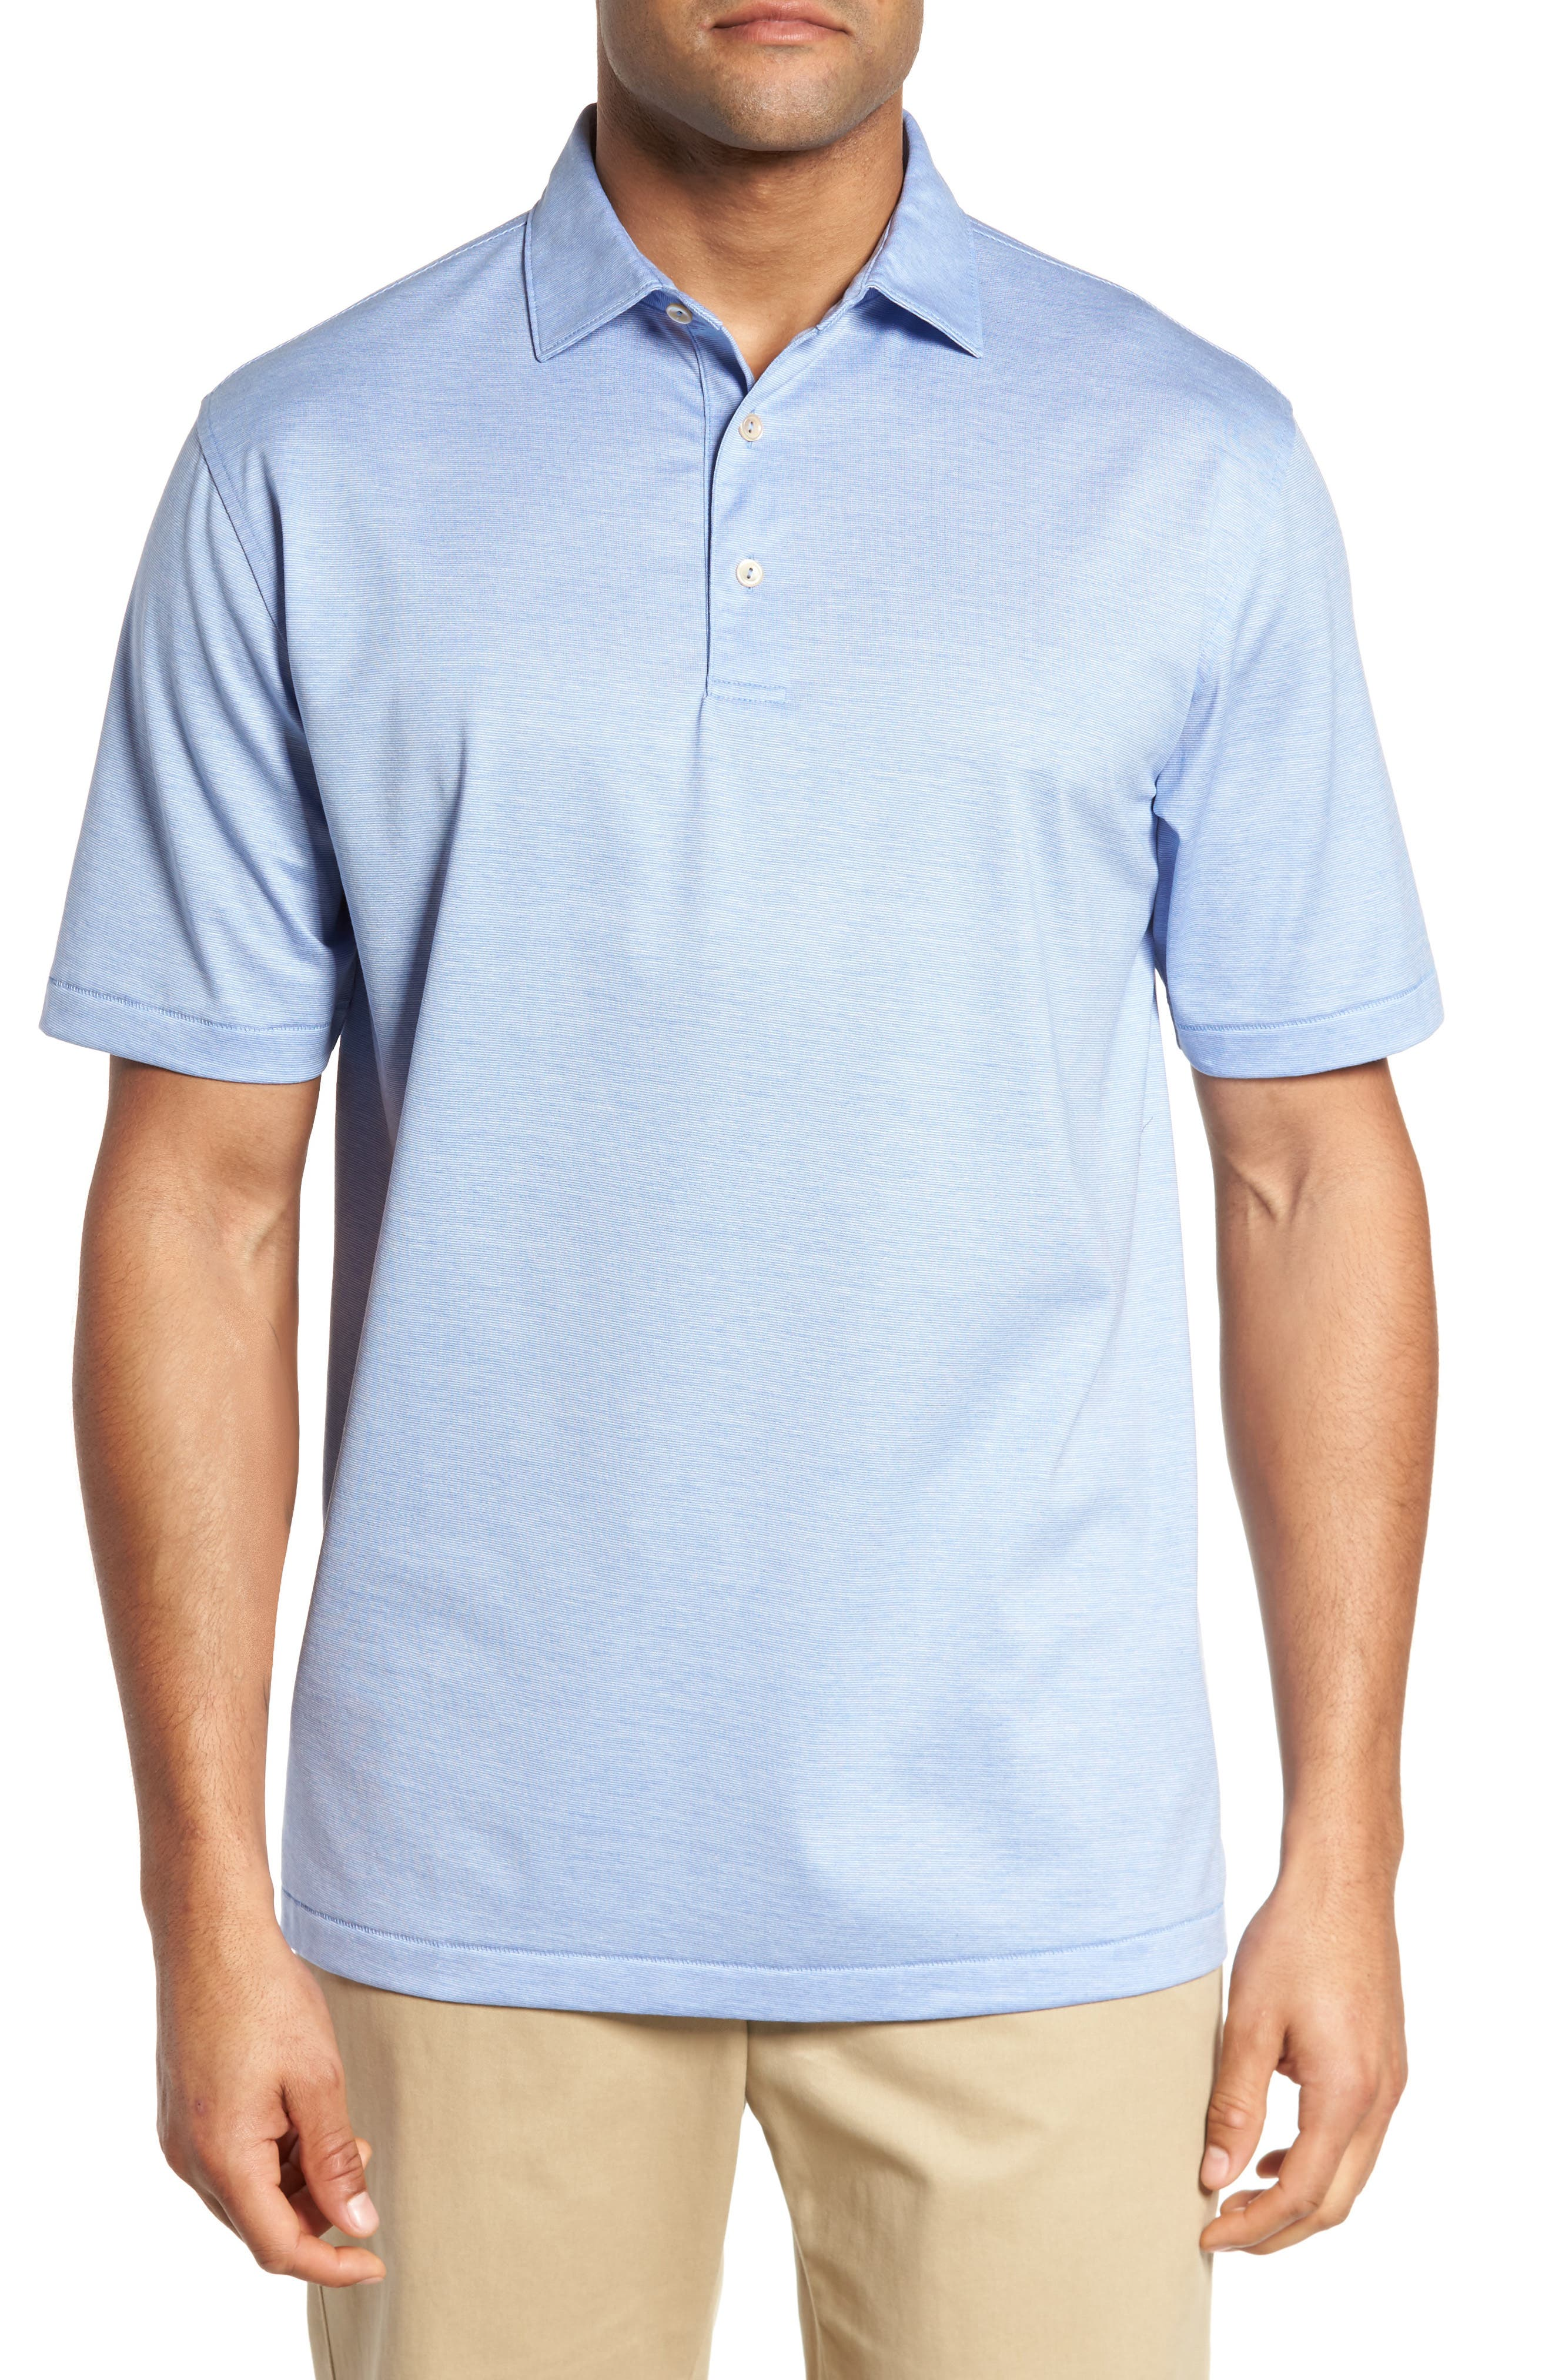 PETER MILLAR Briarwood Stripe Cotton Polo, Main, color, ATLAS BLUE